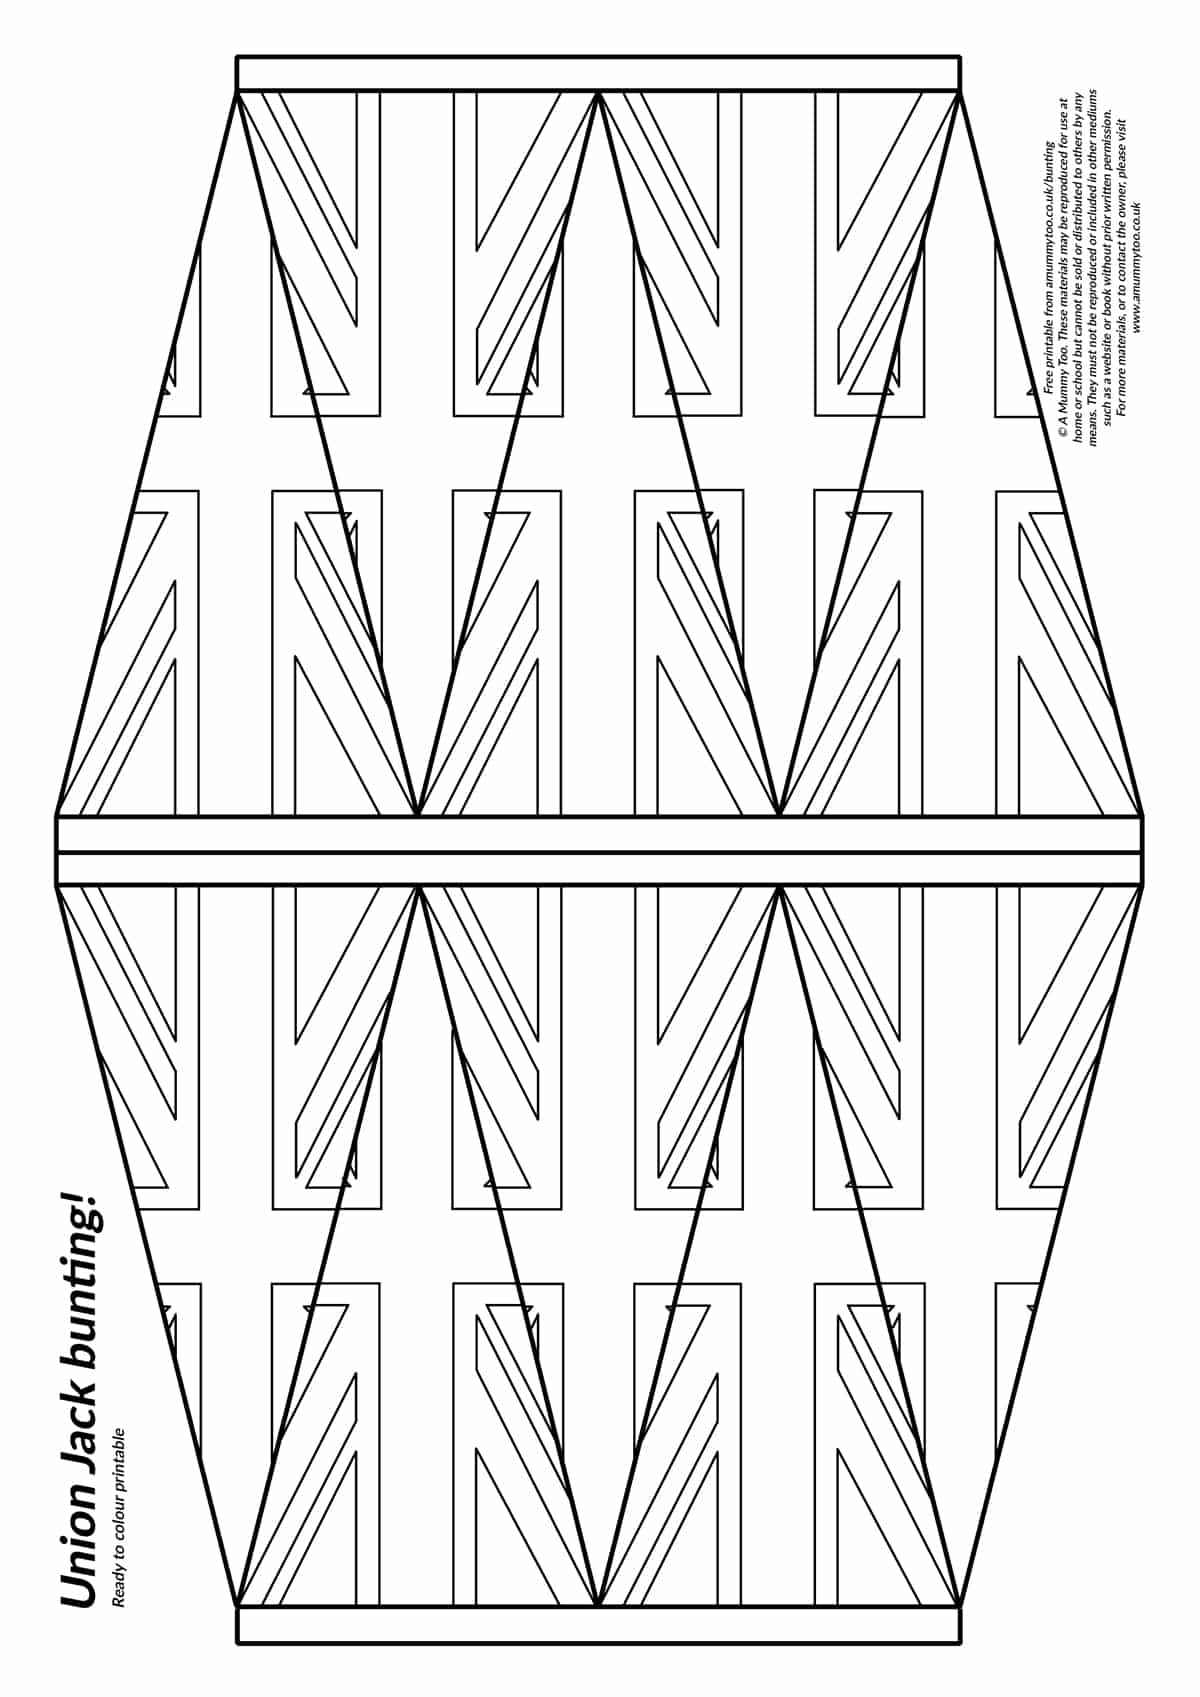 Printable Union Jack bunting - 10 bunting flags arranged on a sheet of A4 paper, ready to print and colour in.